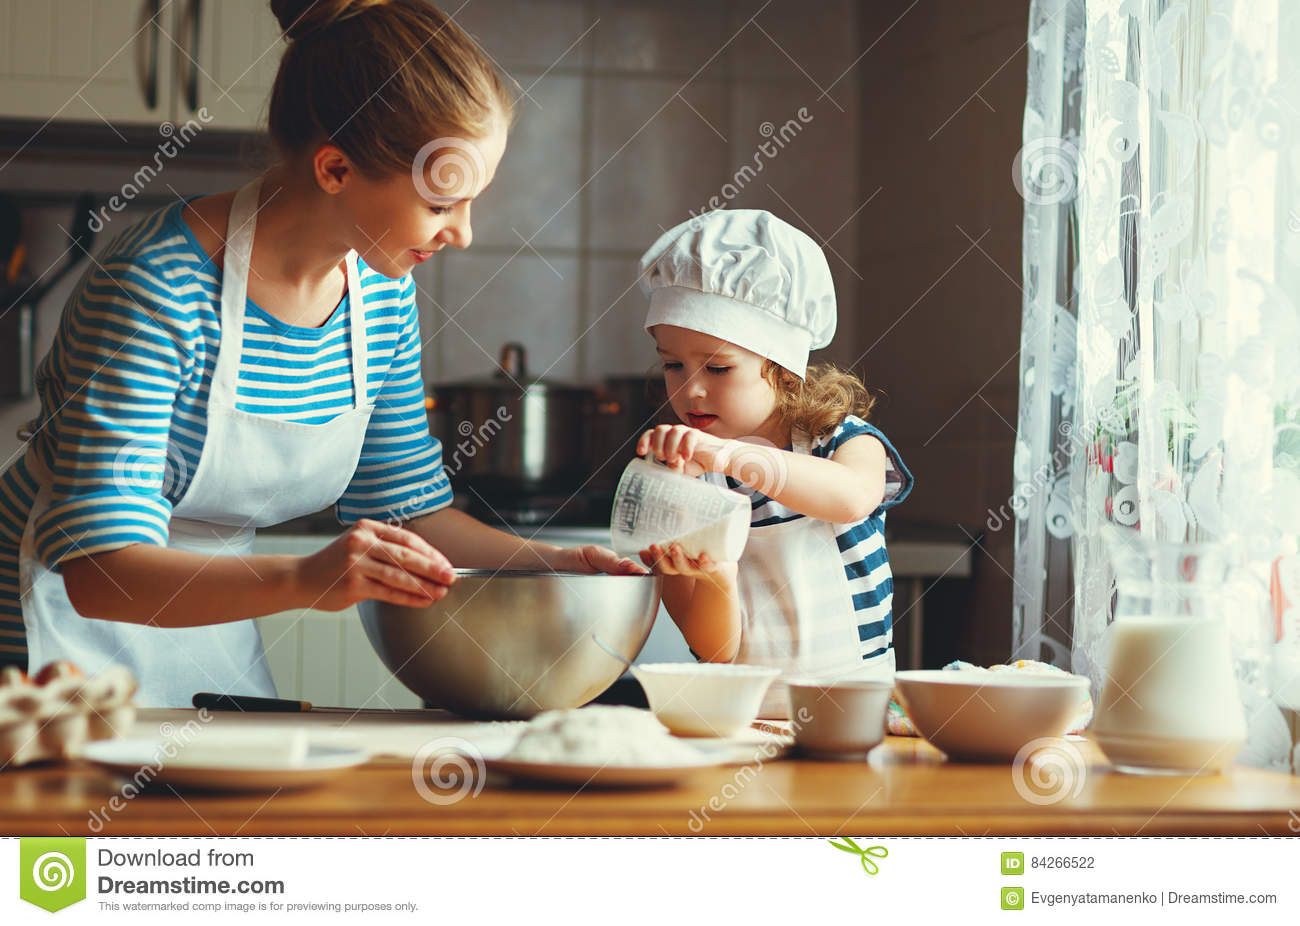 Happy family in kitchen - Happy Family In Kitchen Mother And Child Preparing Dough Bake